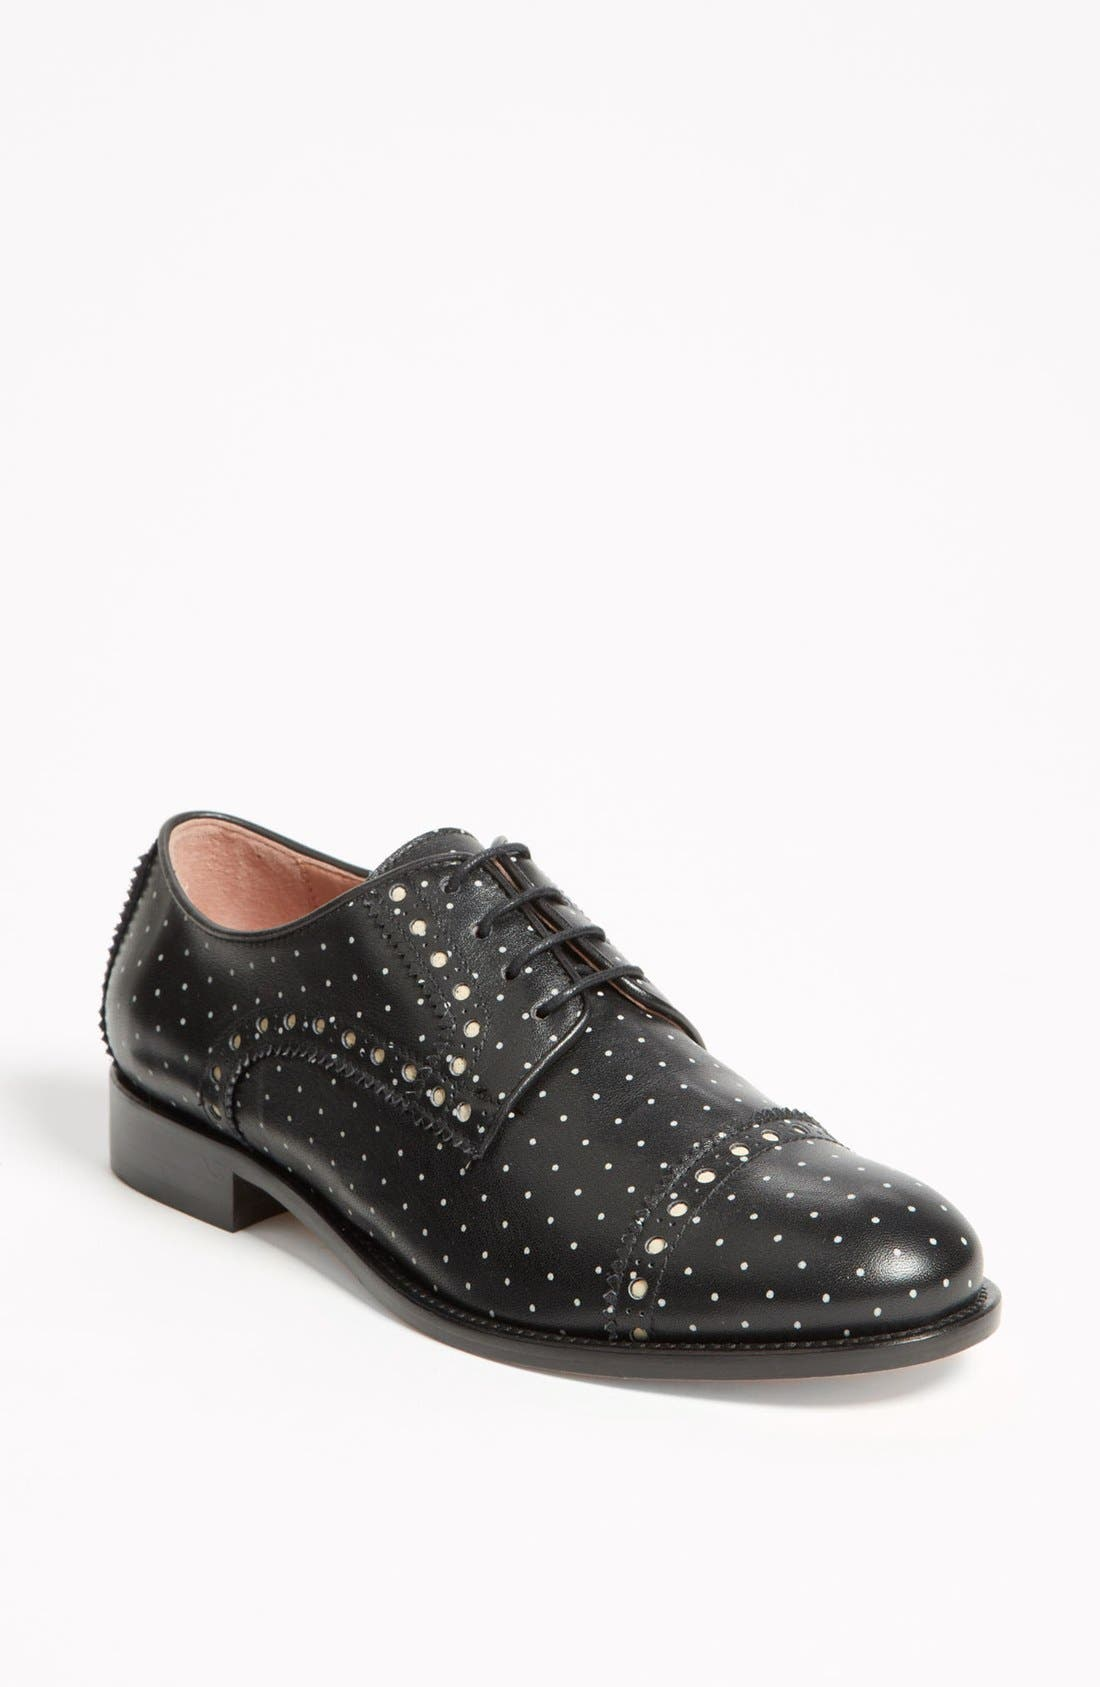 Main Image - RED Valentino 'Polka Dot' Oxford